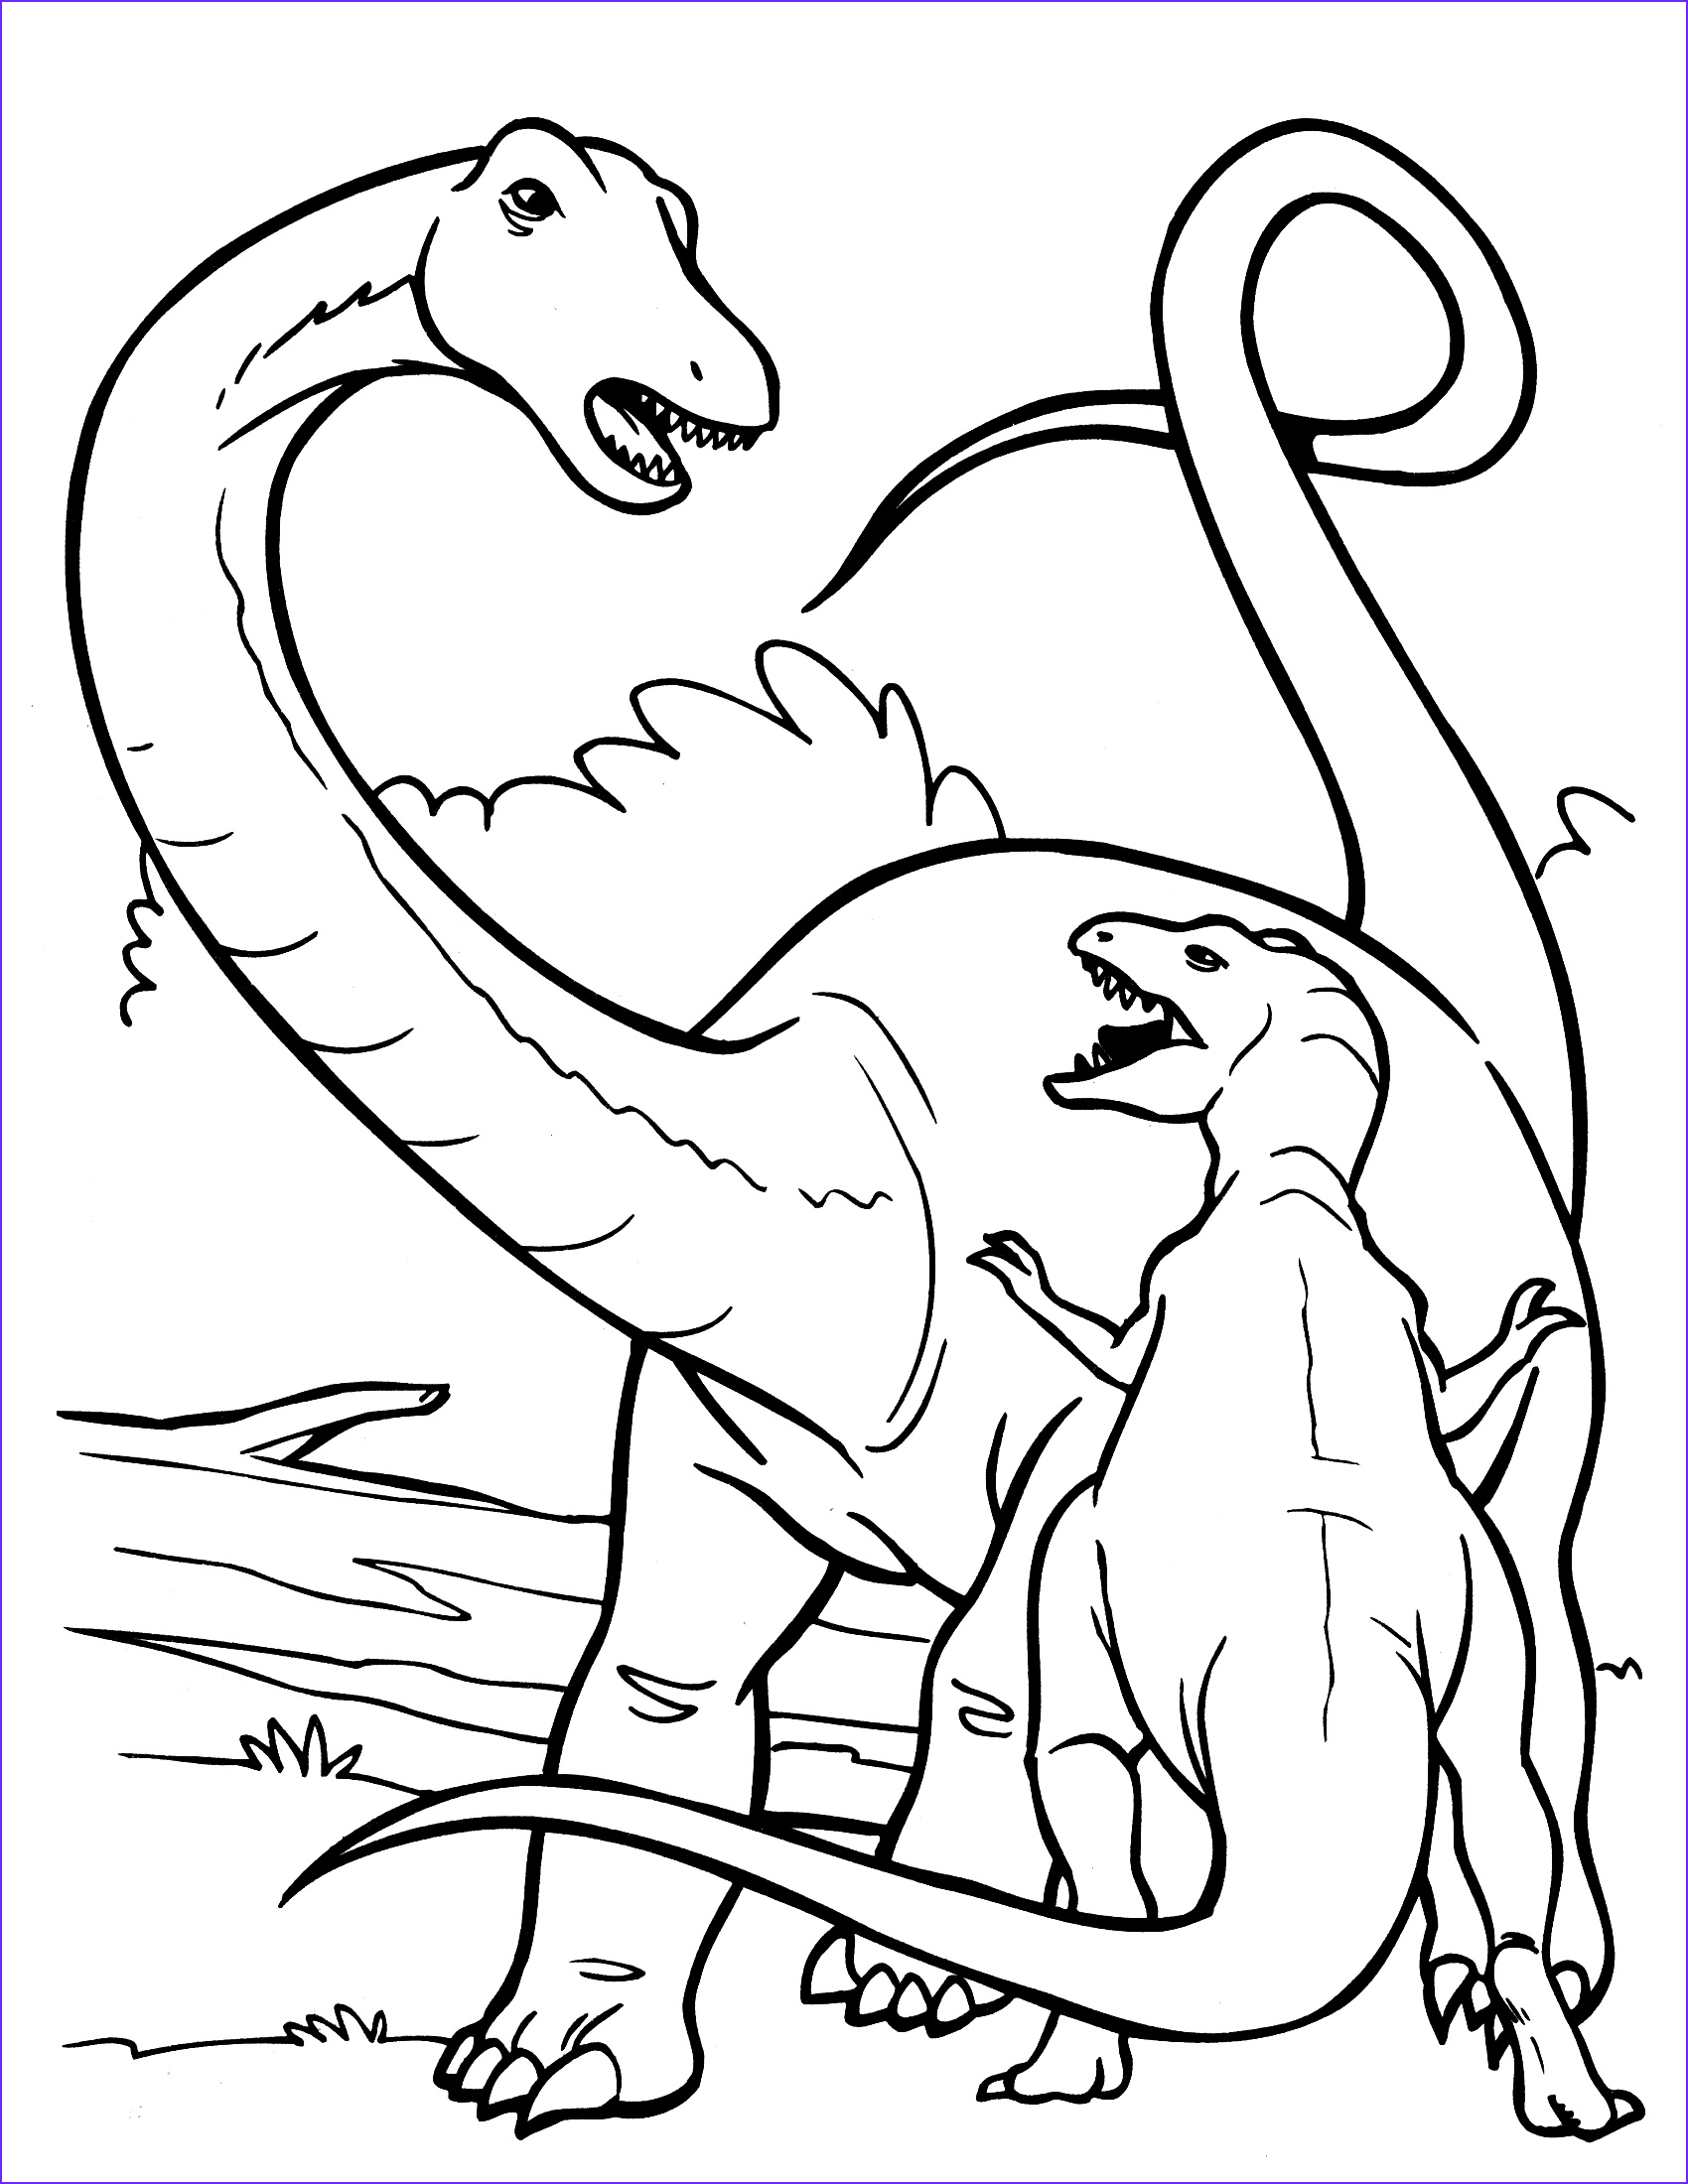 Coloring Page Dinosaur New Gallery Dinosaur Coloring Pages